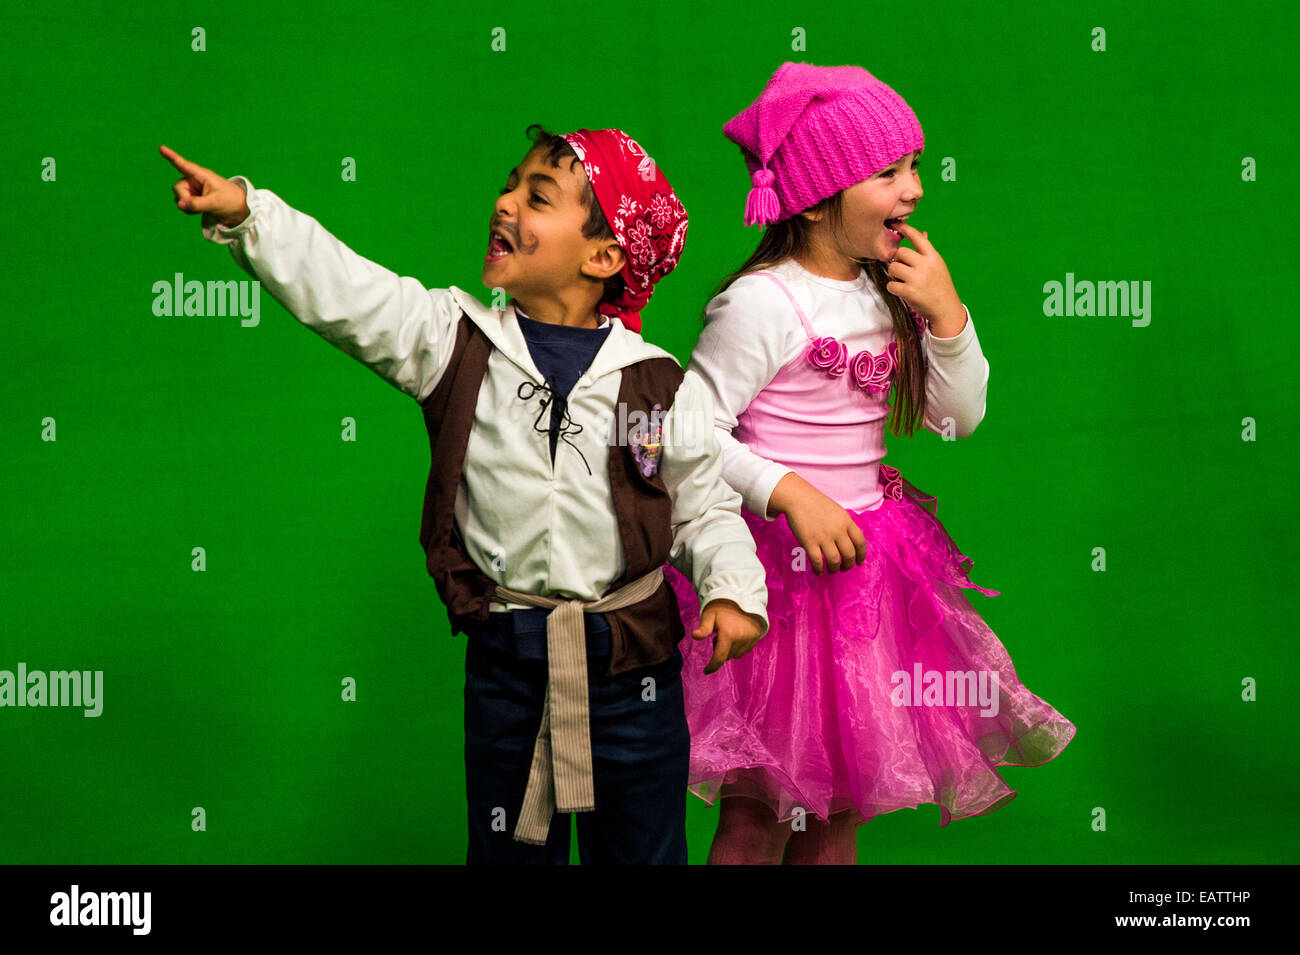 School children performing in front of a green screen at a studio. - Stock Image